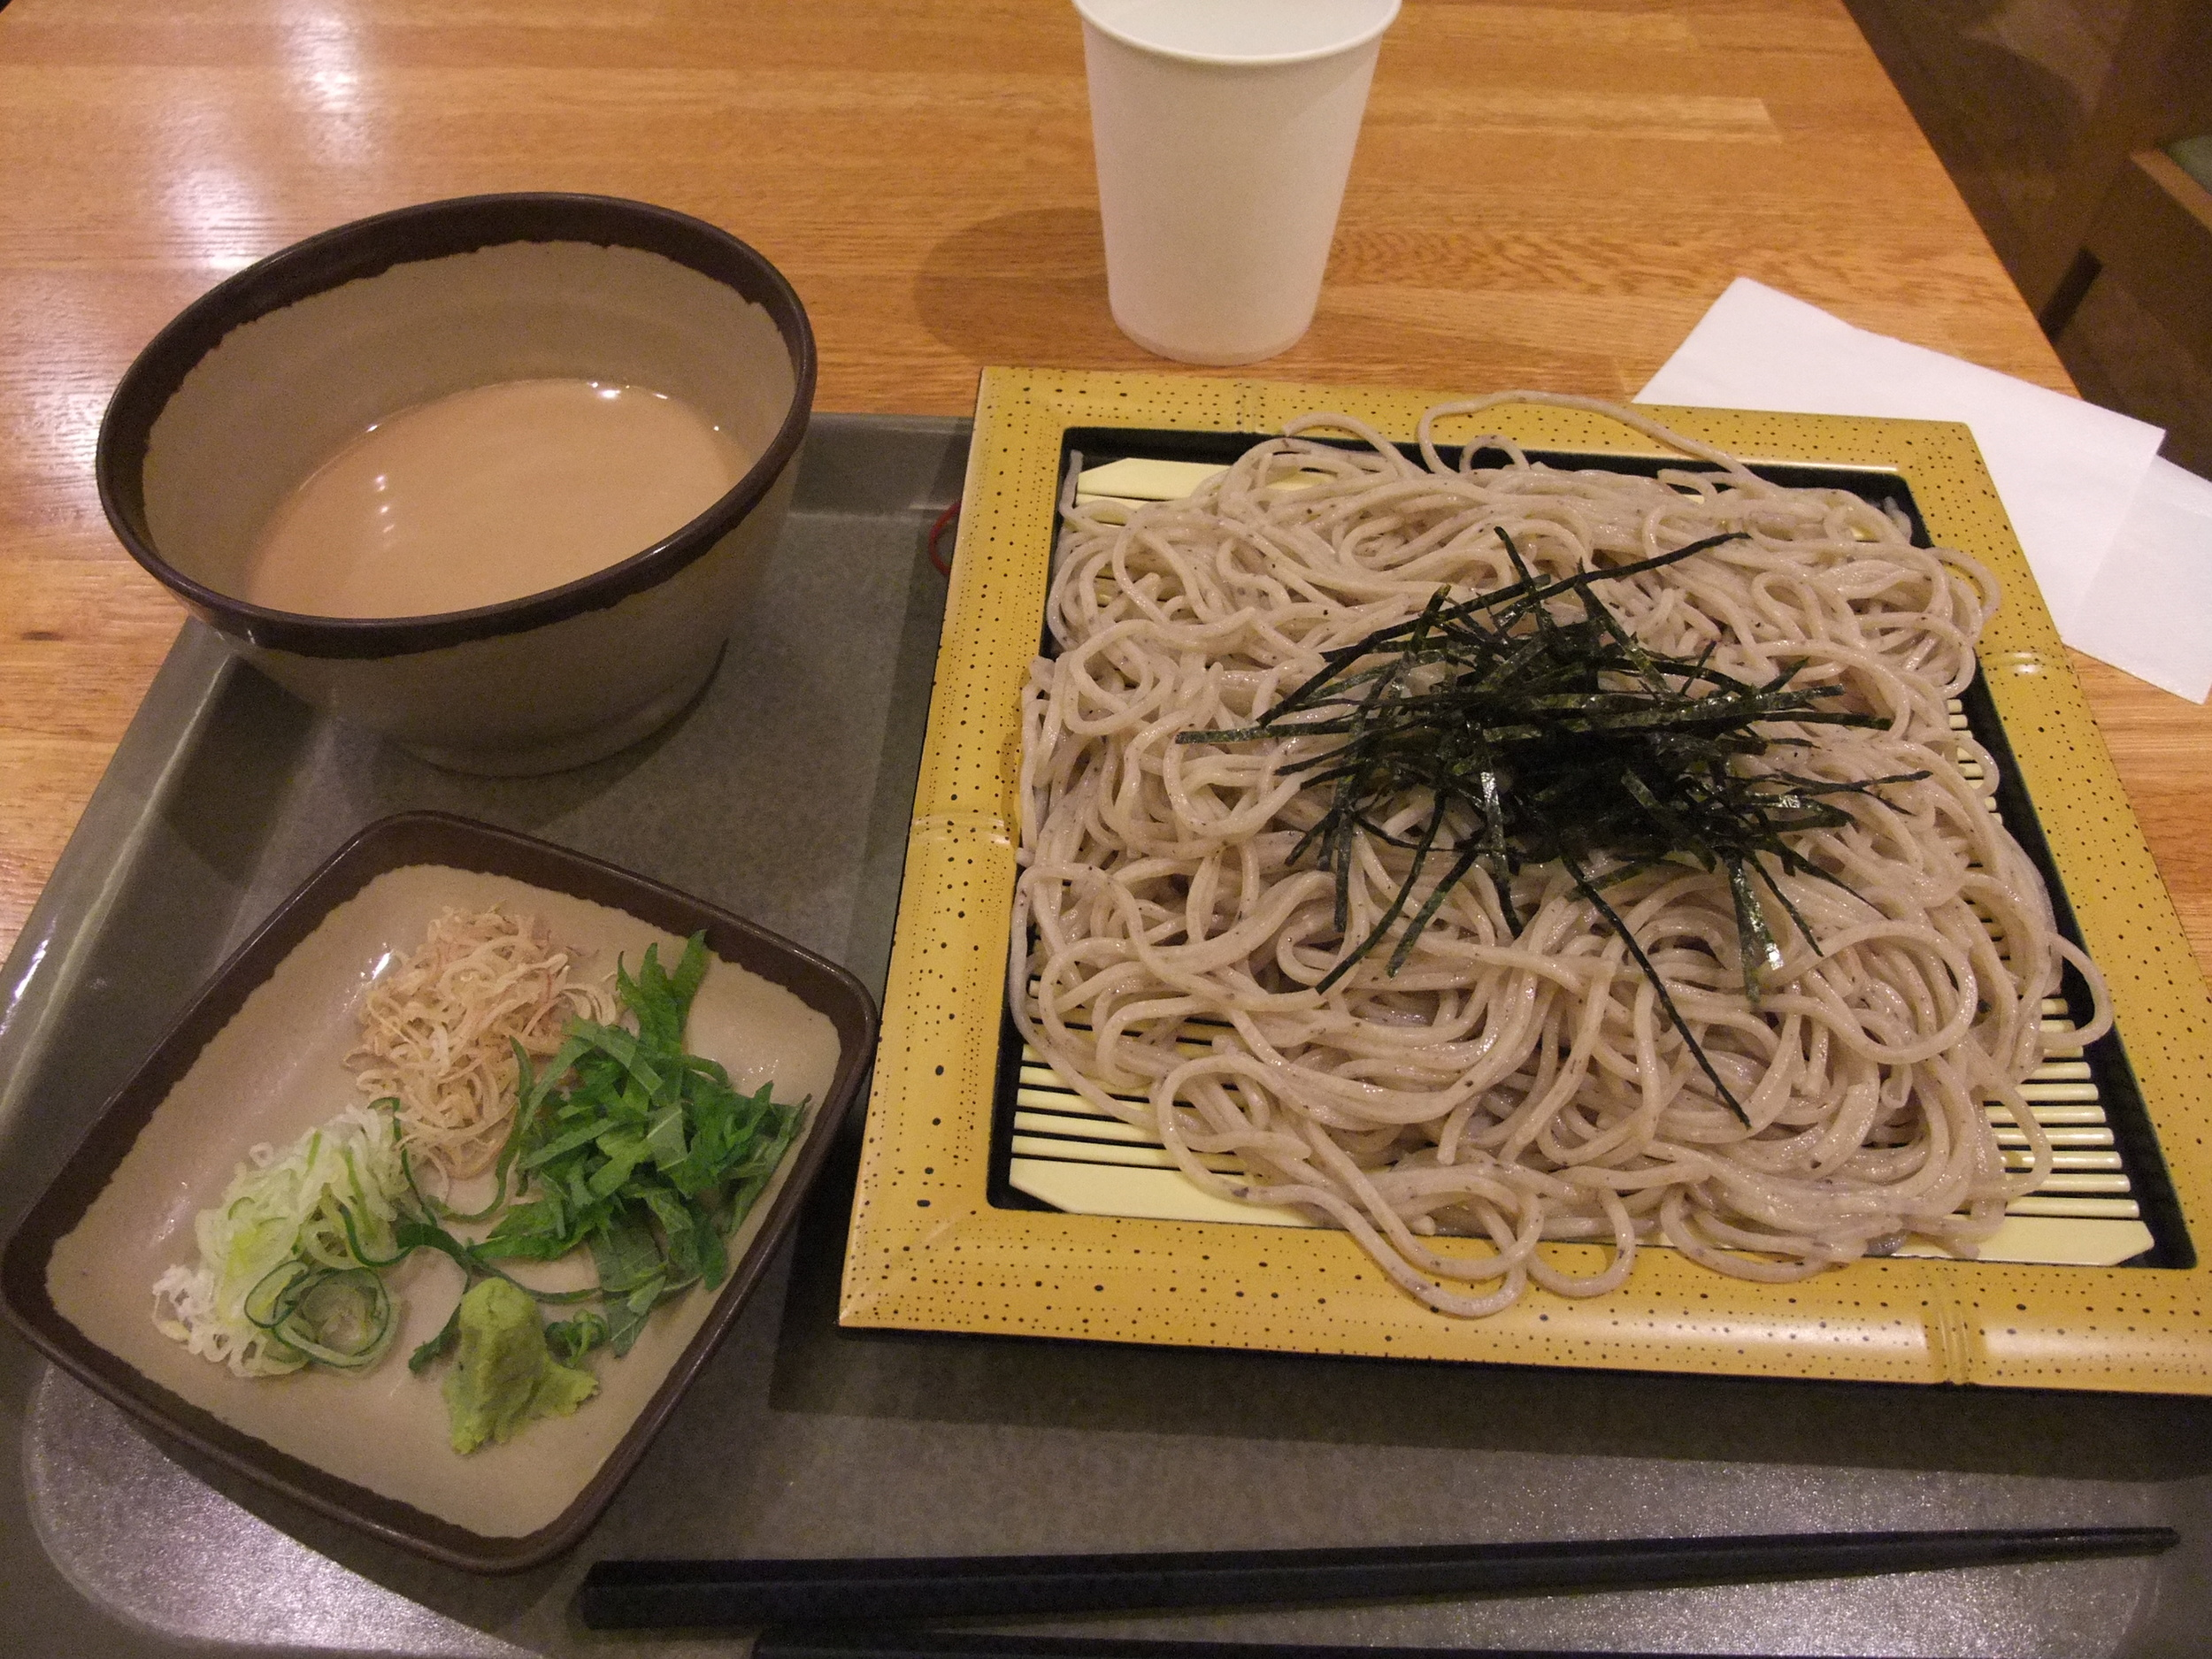 Soba noodles served cold with a dipping sauce